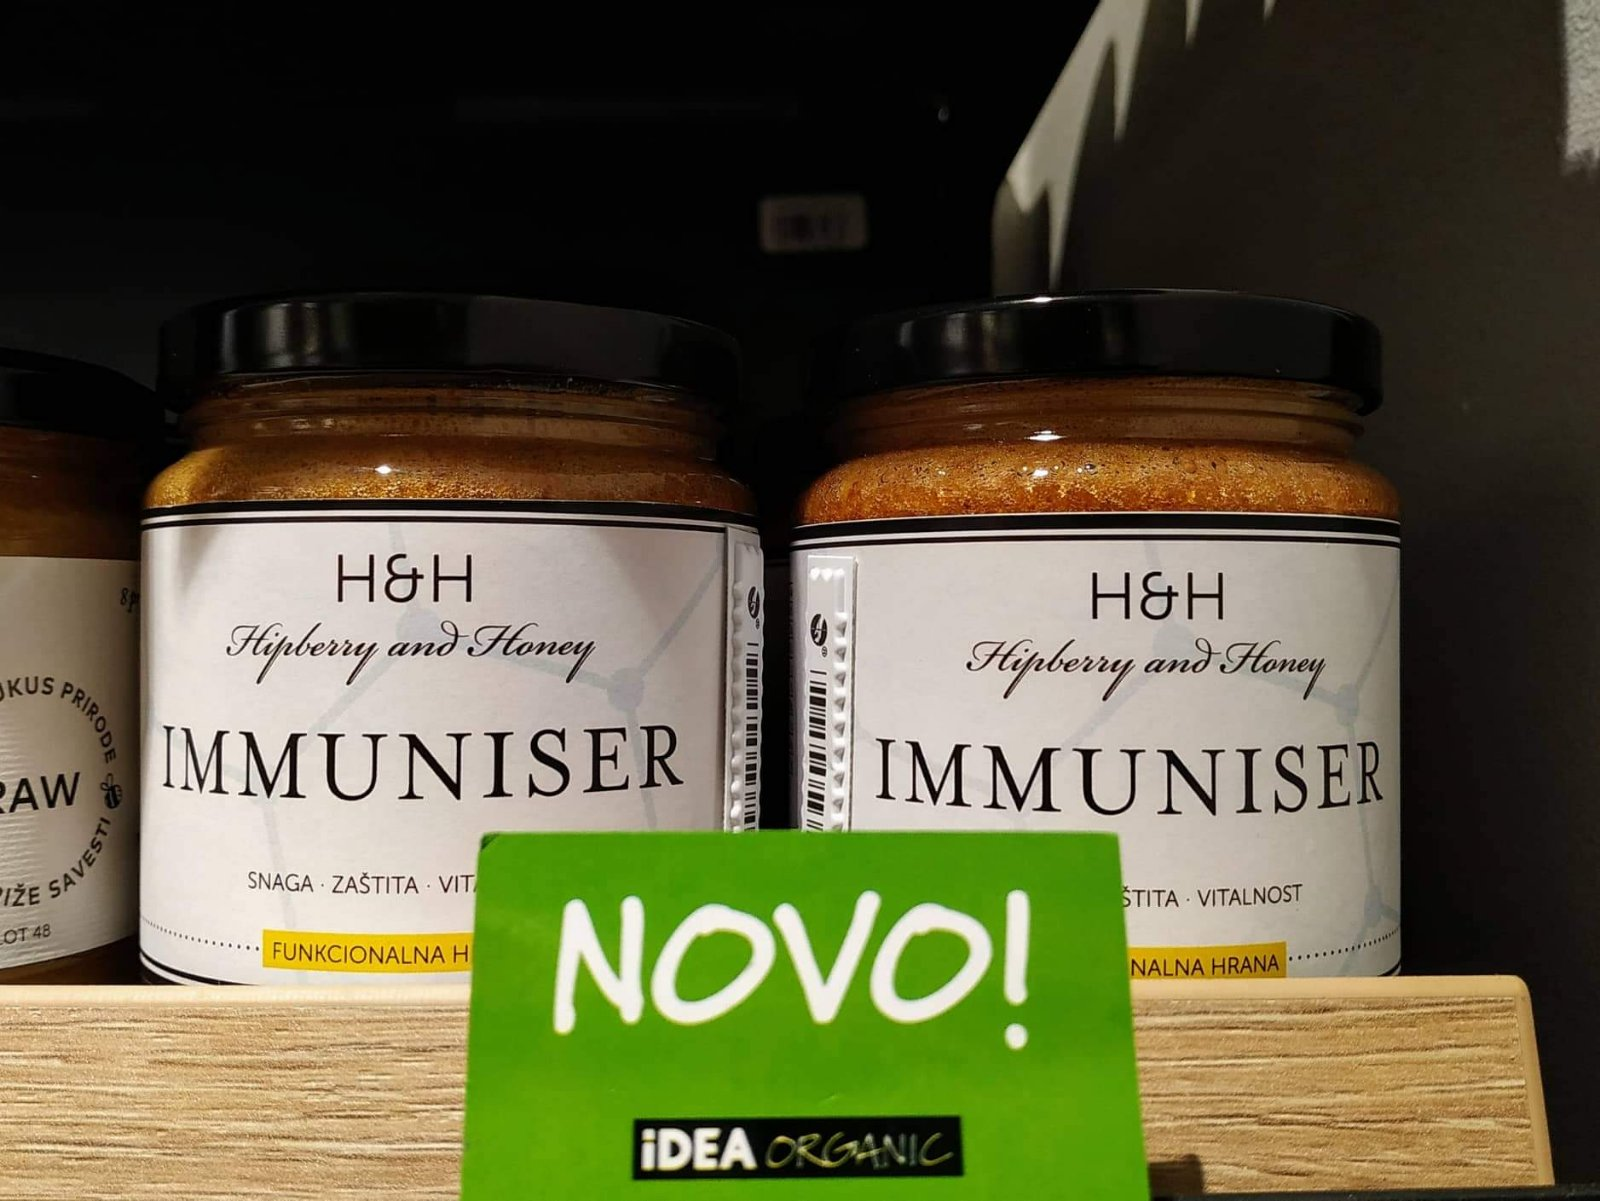 hipberry and honey immuniser - spoj sipurka i meda je vitaminska bomba